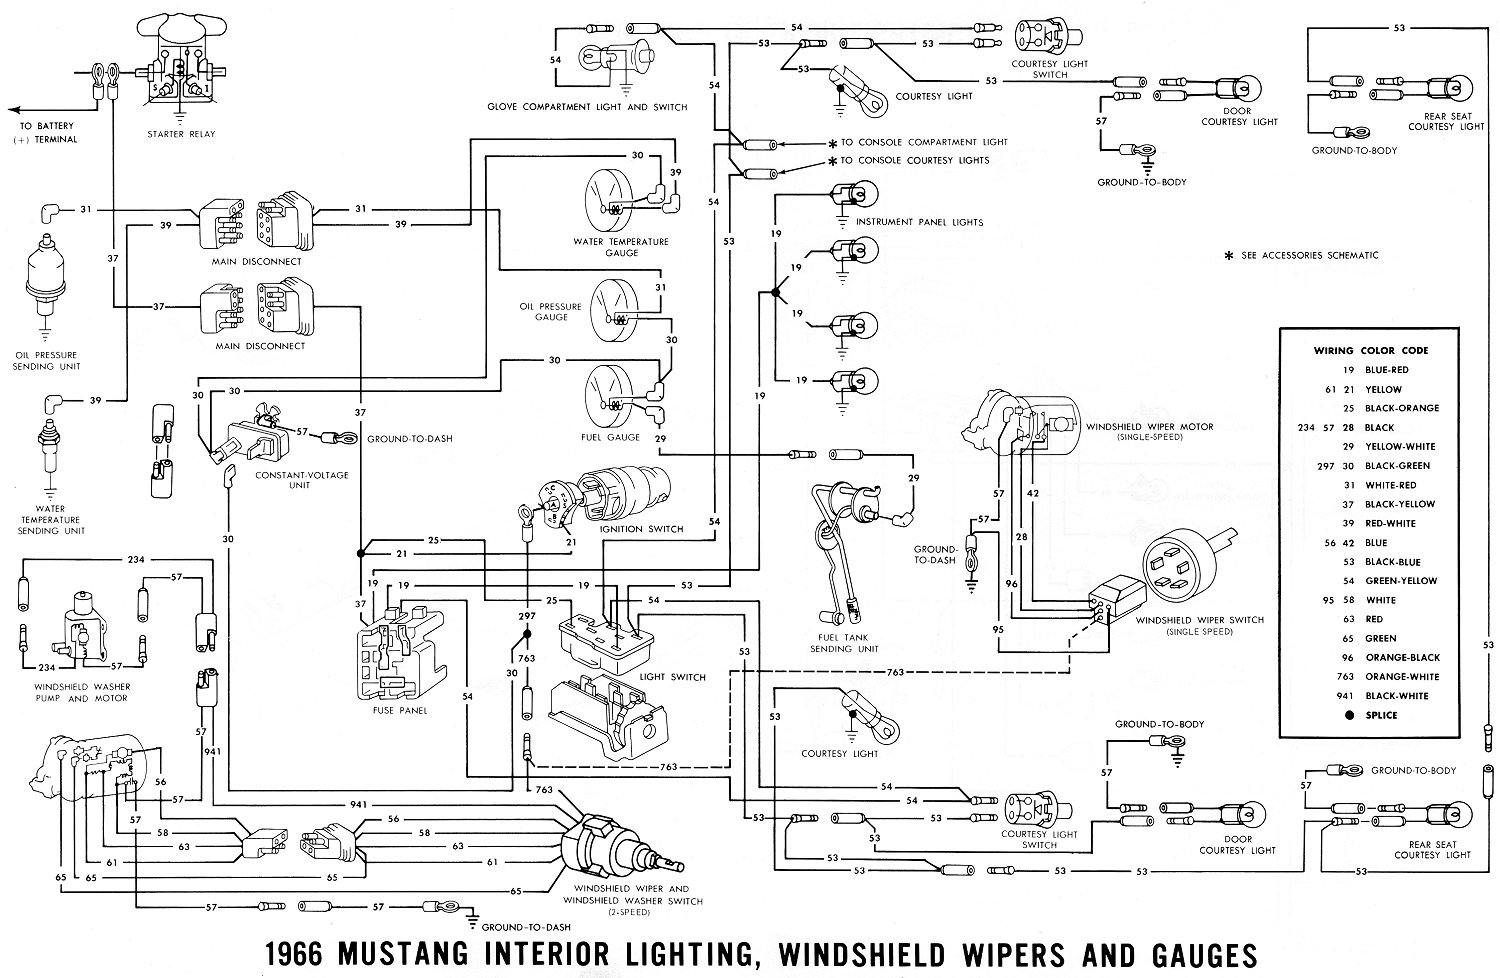 1965 Mustang Charging Wiring Diagram Schematic Library Accessory Spotlight For Motorcycle 65 Voltage Regulator Todays Ford